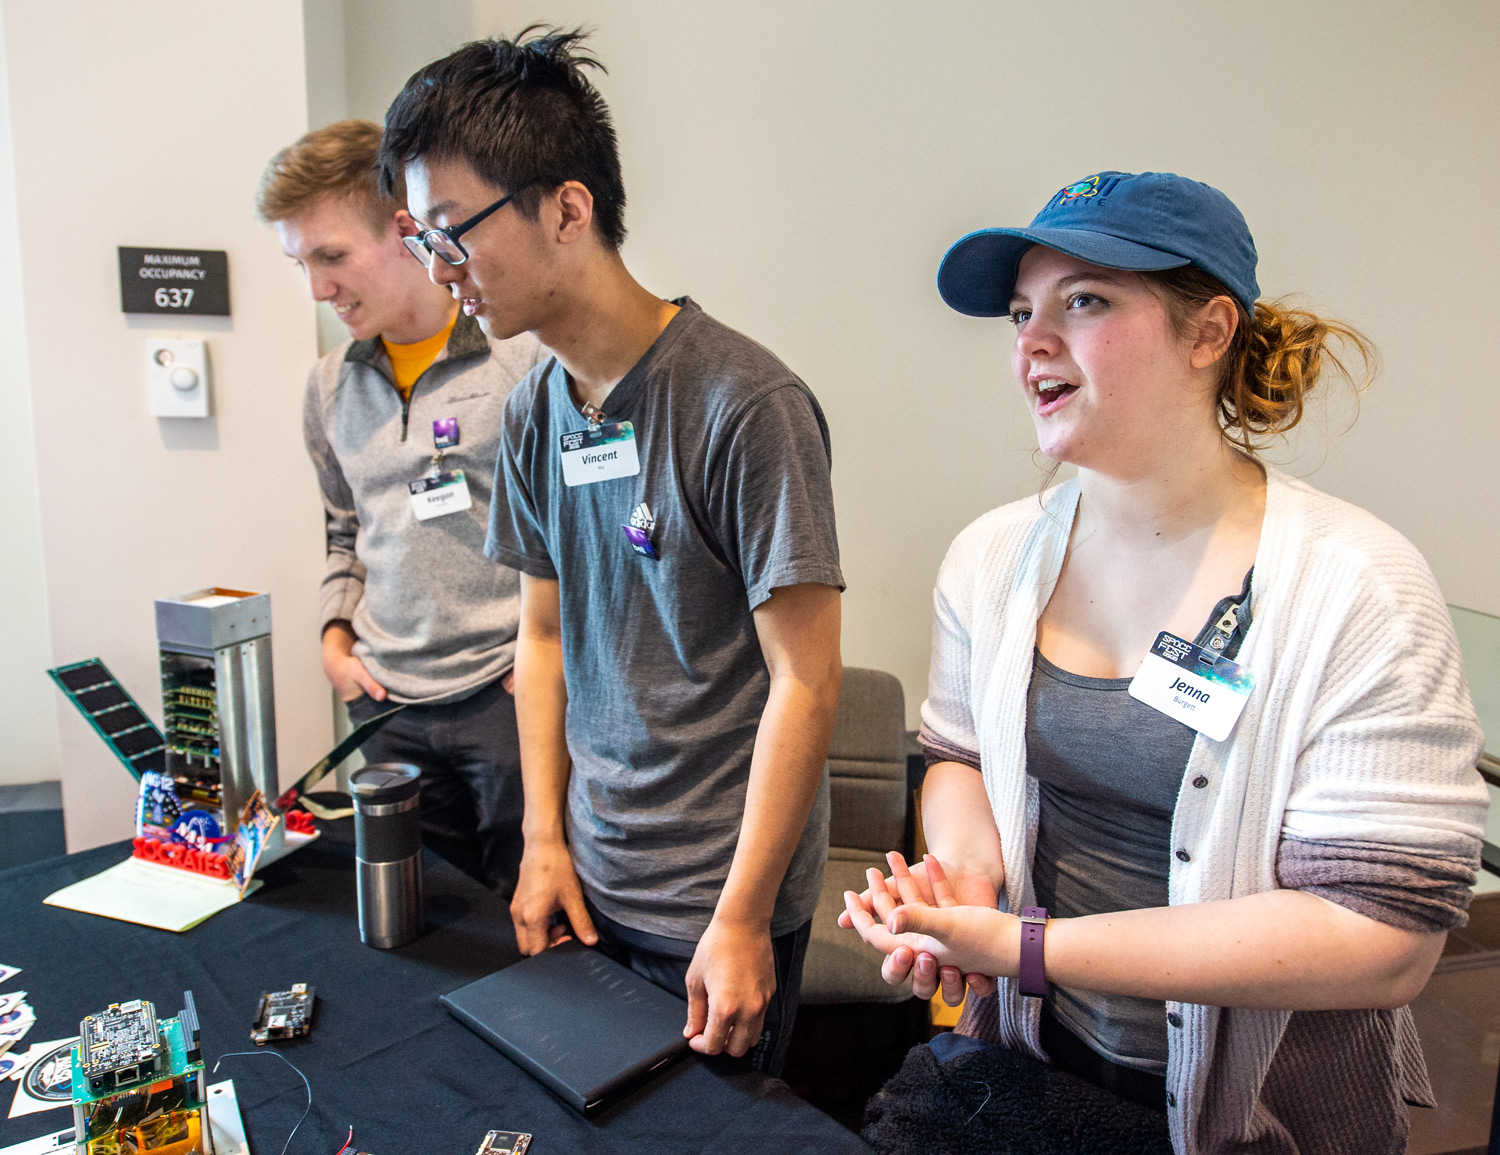 Students from the U of M show visitors components from a CubeSat